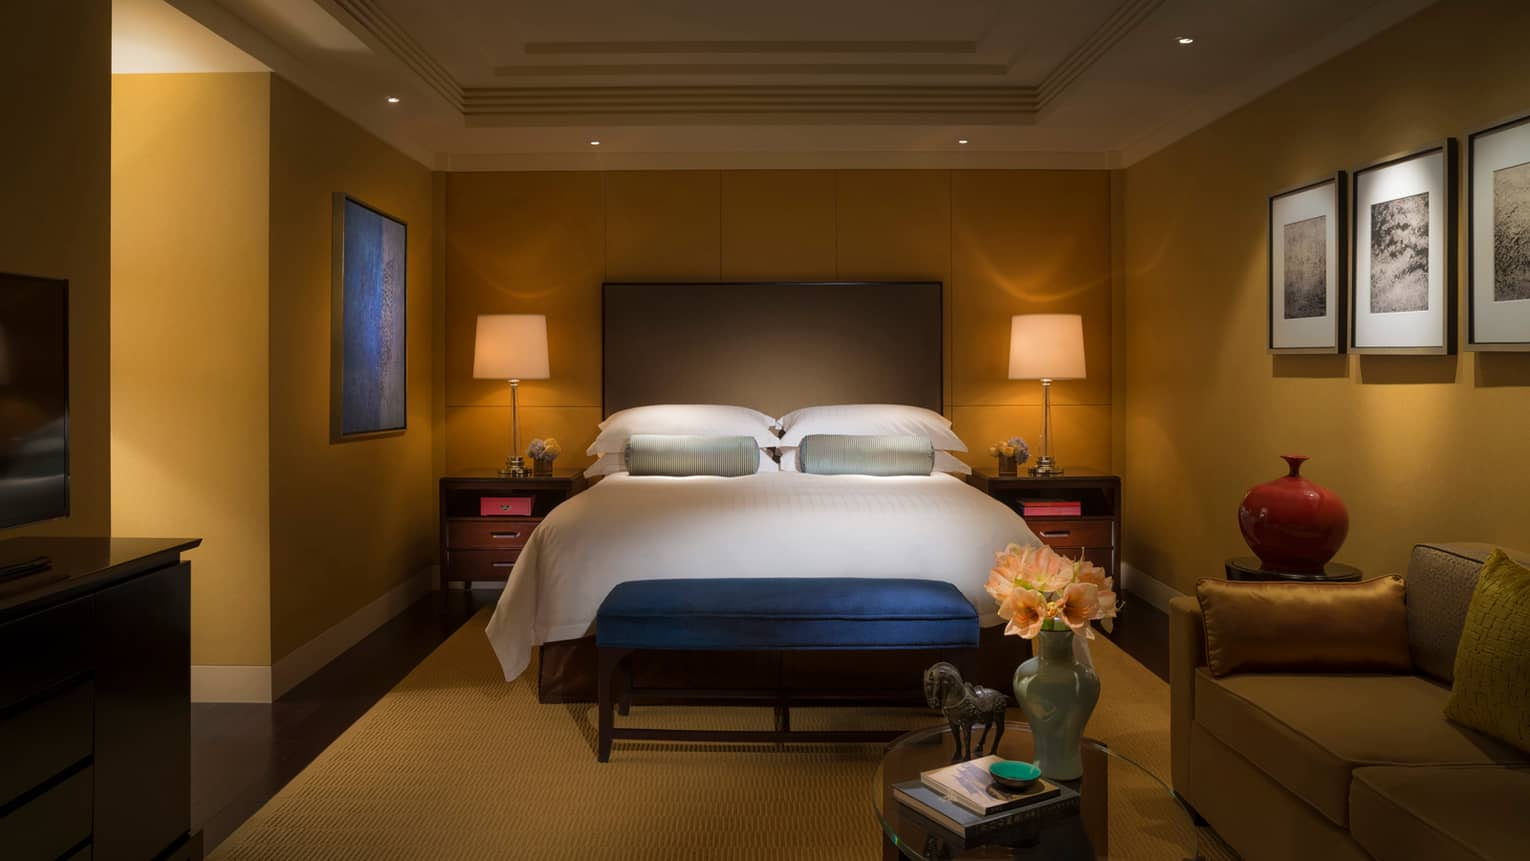 Dimly-lit hotel room bed with tall padded headboard, small blue bench at foot, small table with vase, horse statue